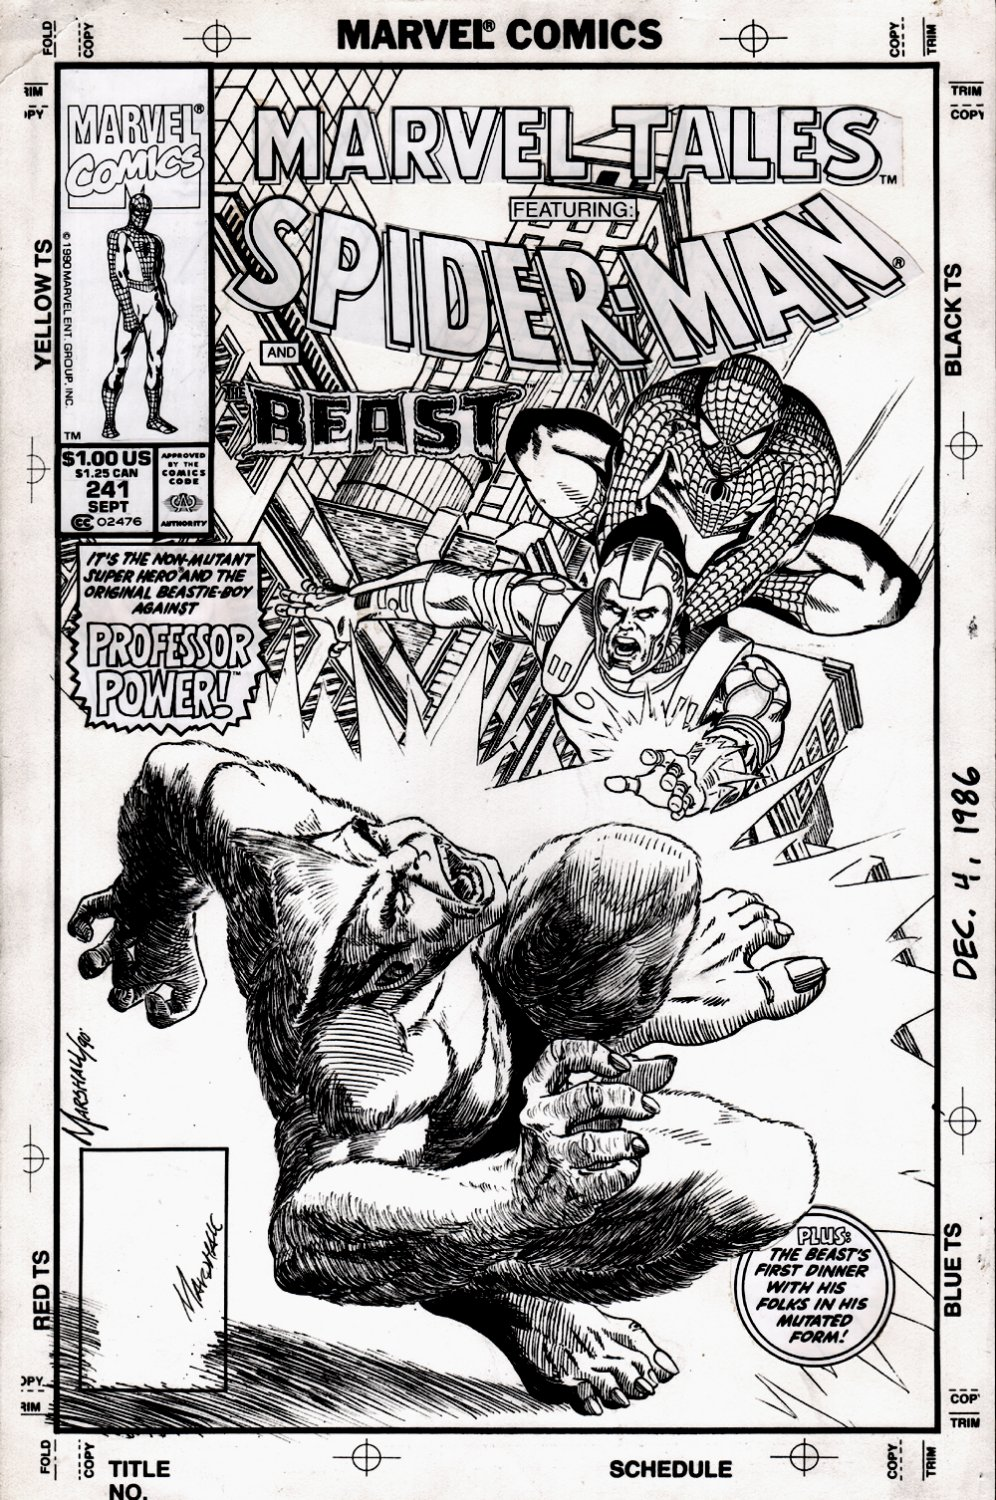 Marvel Tales #241 Cover (Spider-Man & Beast!) 1990